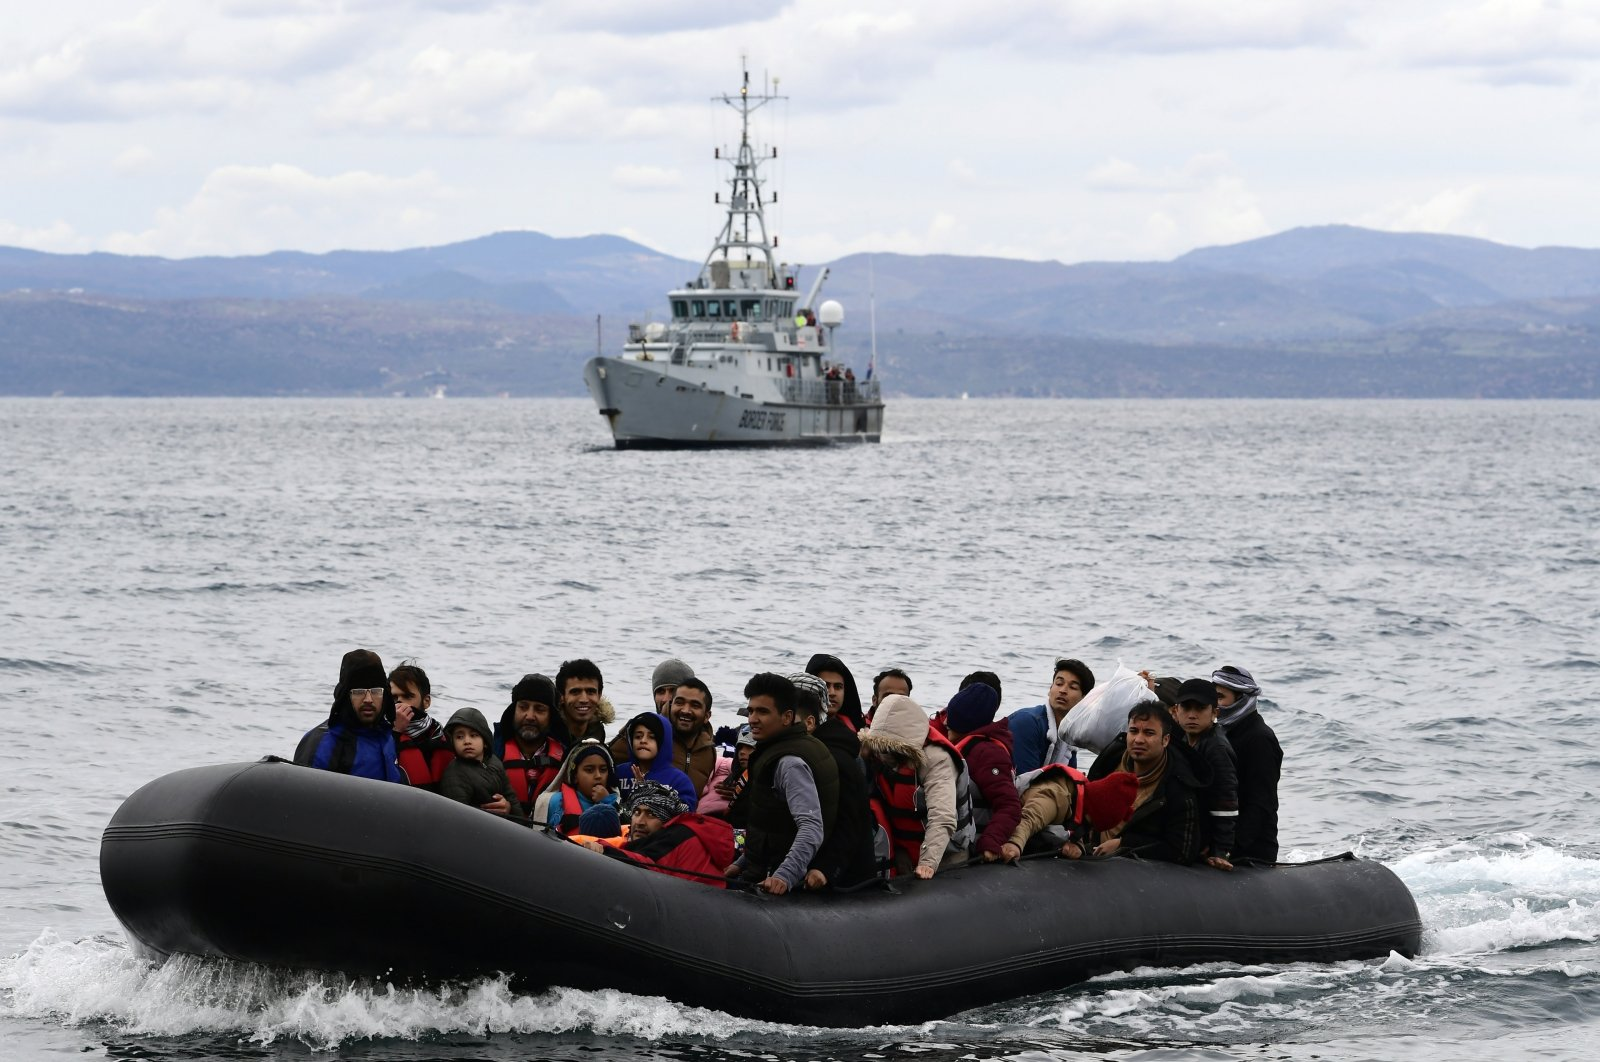 Migrants arrive at the village of Skala Sikaminias, on the Greek island of Lesbos, after crossing the Aegean Sea from Turkey, on Feb. 28, 2020. (AP Photo)